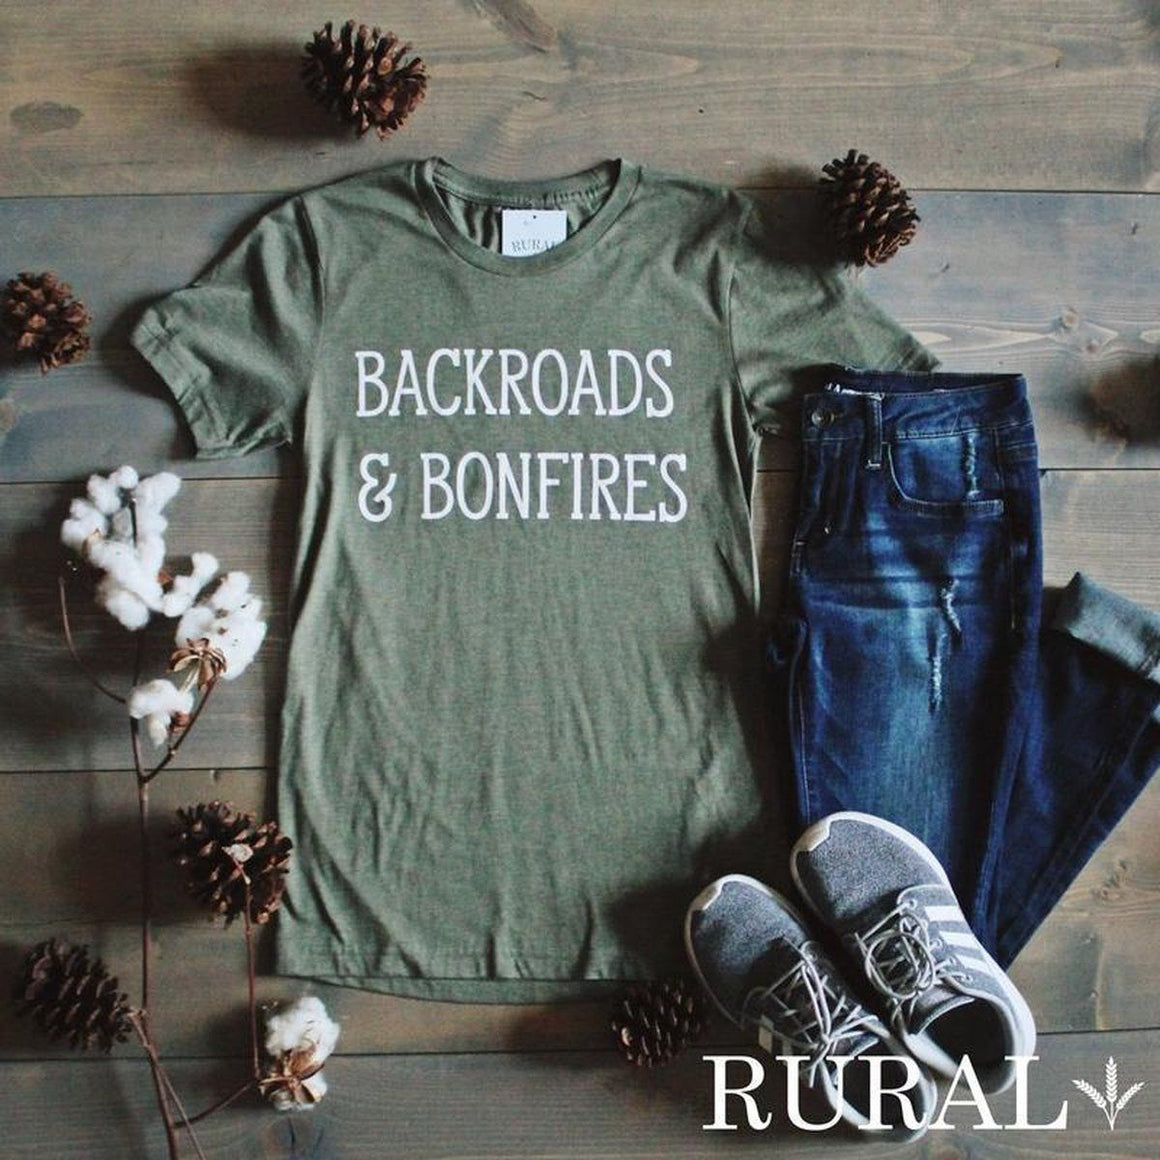 backroads and bonfires graphic tee, backroads and bonfires rural tee, backroads and bonfires, backroads and bonfires top, backroads and bonfires shirt, backroads and bonfires tee, backroads and bonfires tshirt, country shirt, country tee, country girl tee, country girl cute shirt, green country tshirt, off roading womens tee, off roading tee, off roading shirt, bonfire tee, bonfire top, bonfire shirt, rural graphic tee, rural apparel, rural haze, rural bliss, midwest tee, midwest shirt